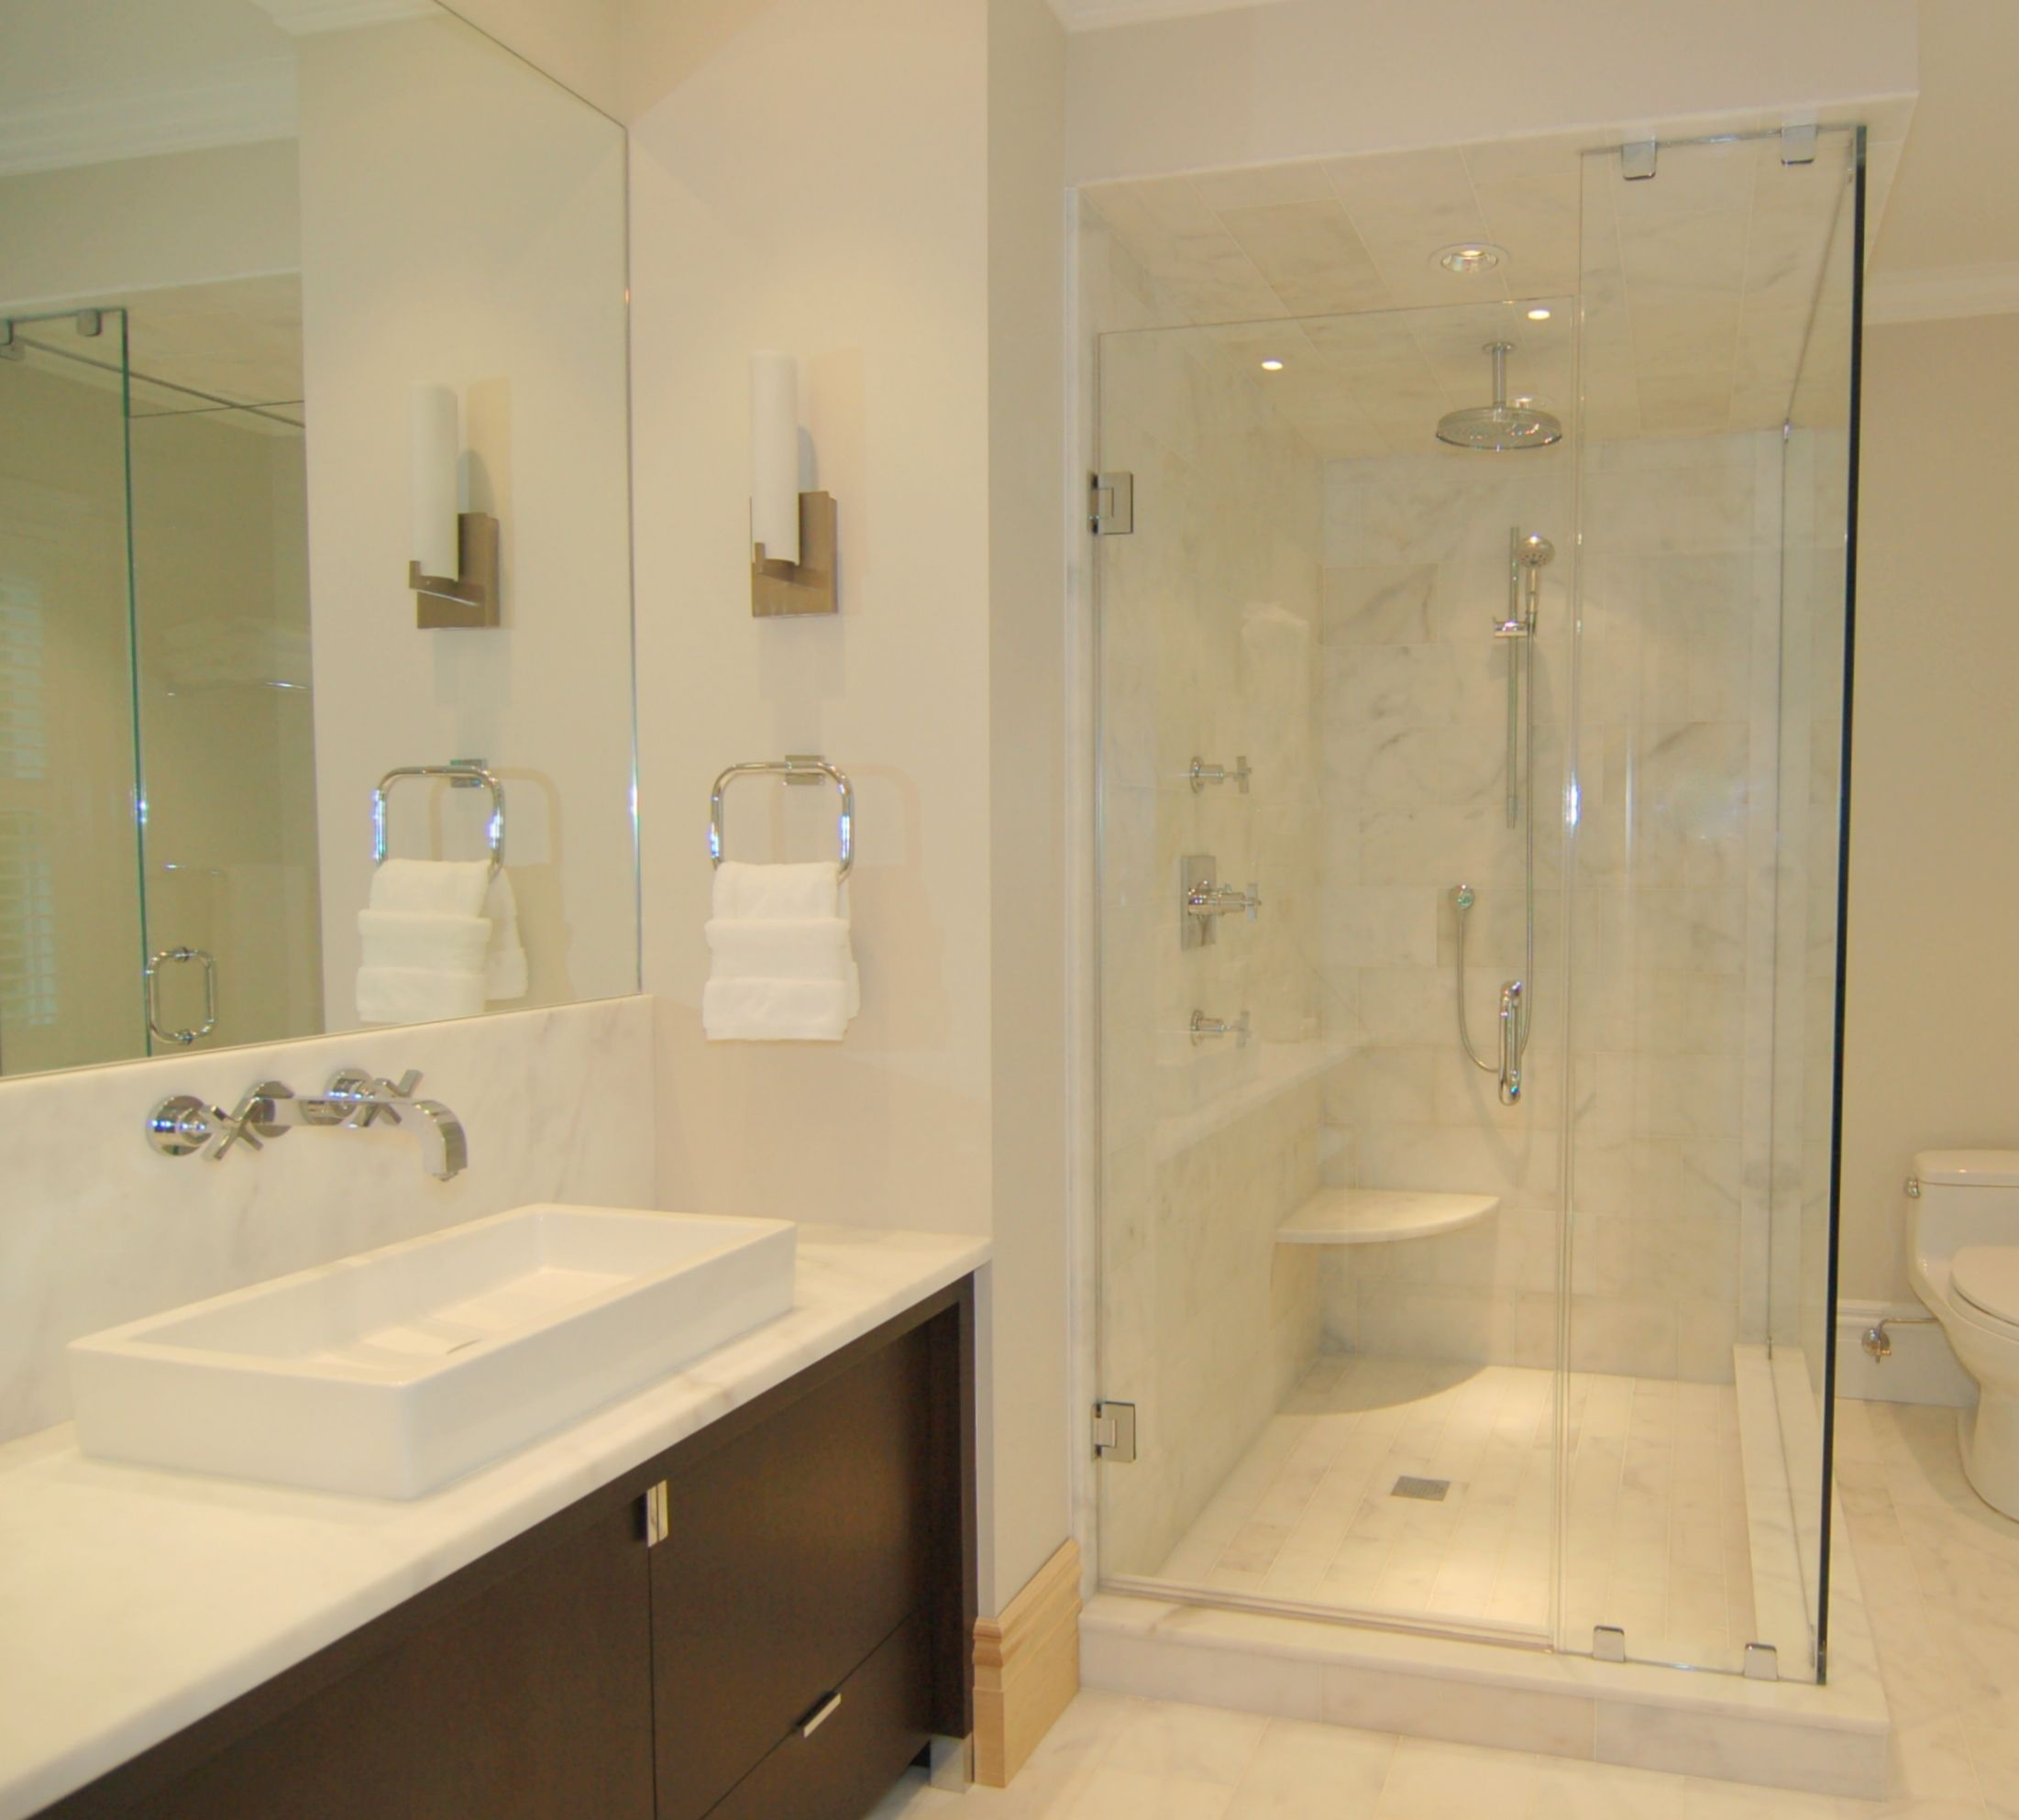 Bathroom shower doors frameless - Cost For Frameless Glass Shower Doors For Contemporary Small Bathroom Design With Large Mirror Design